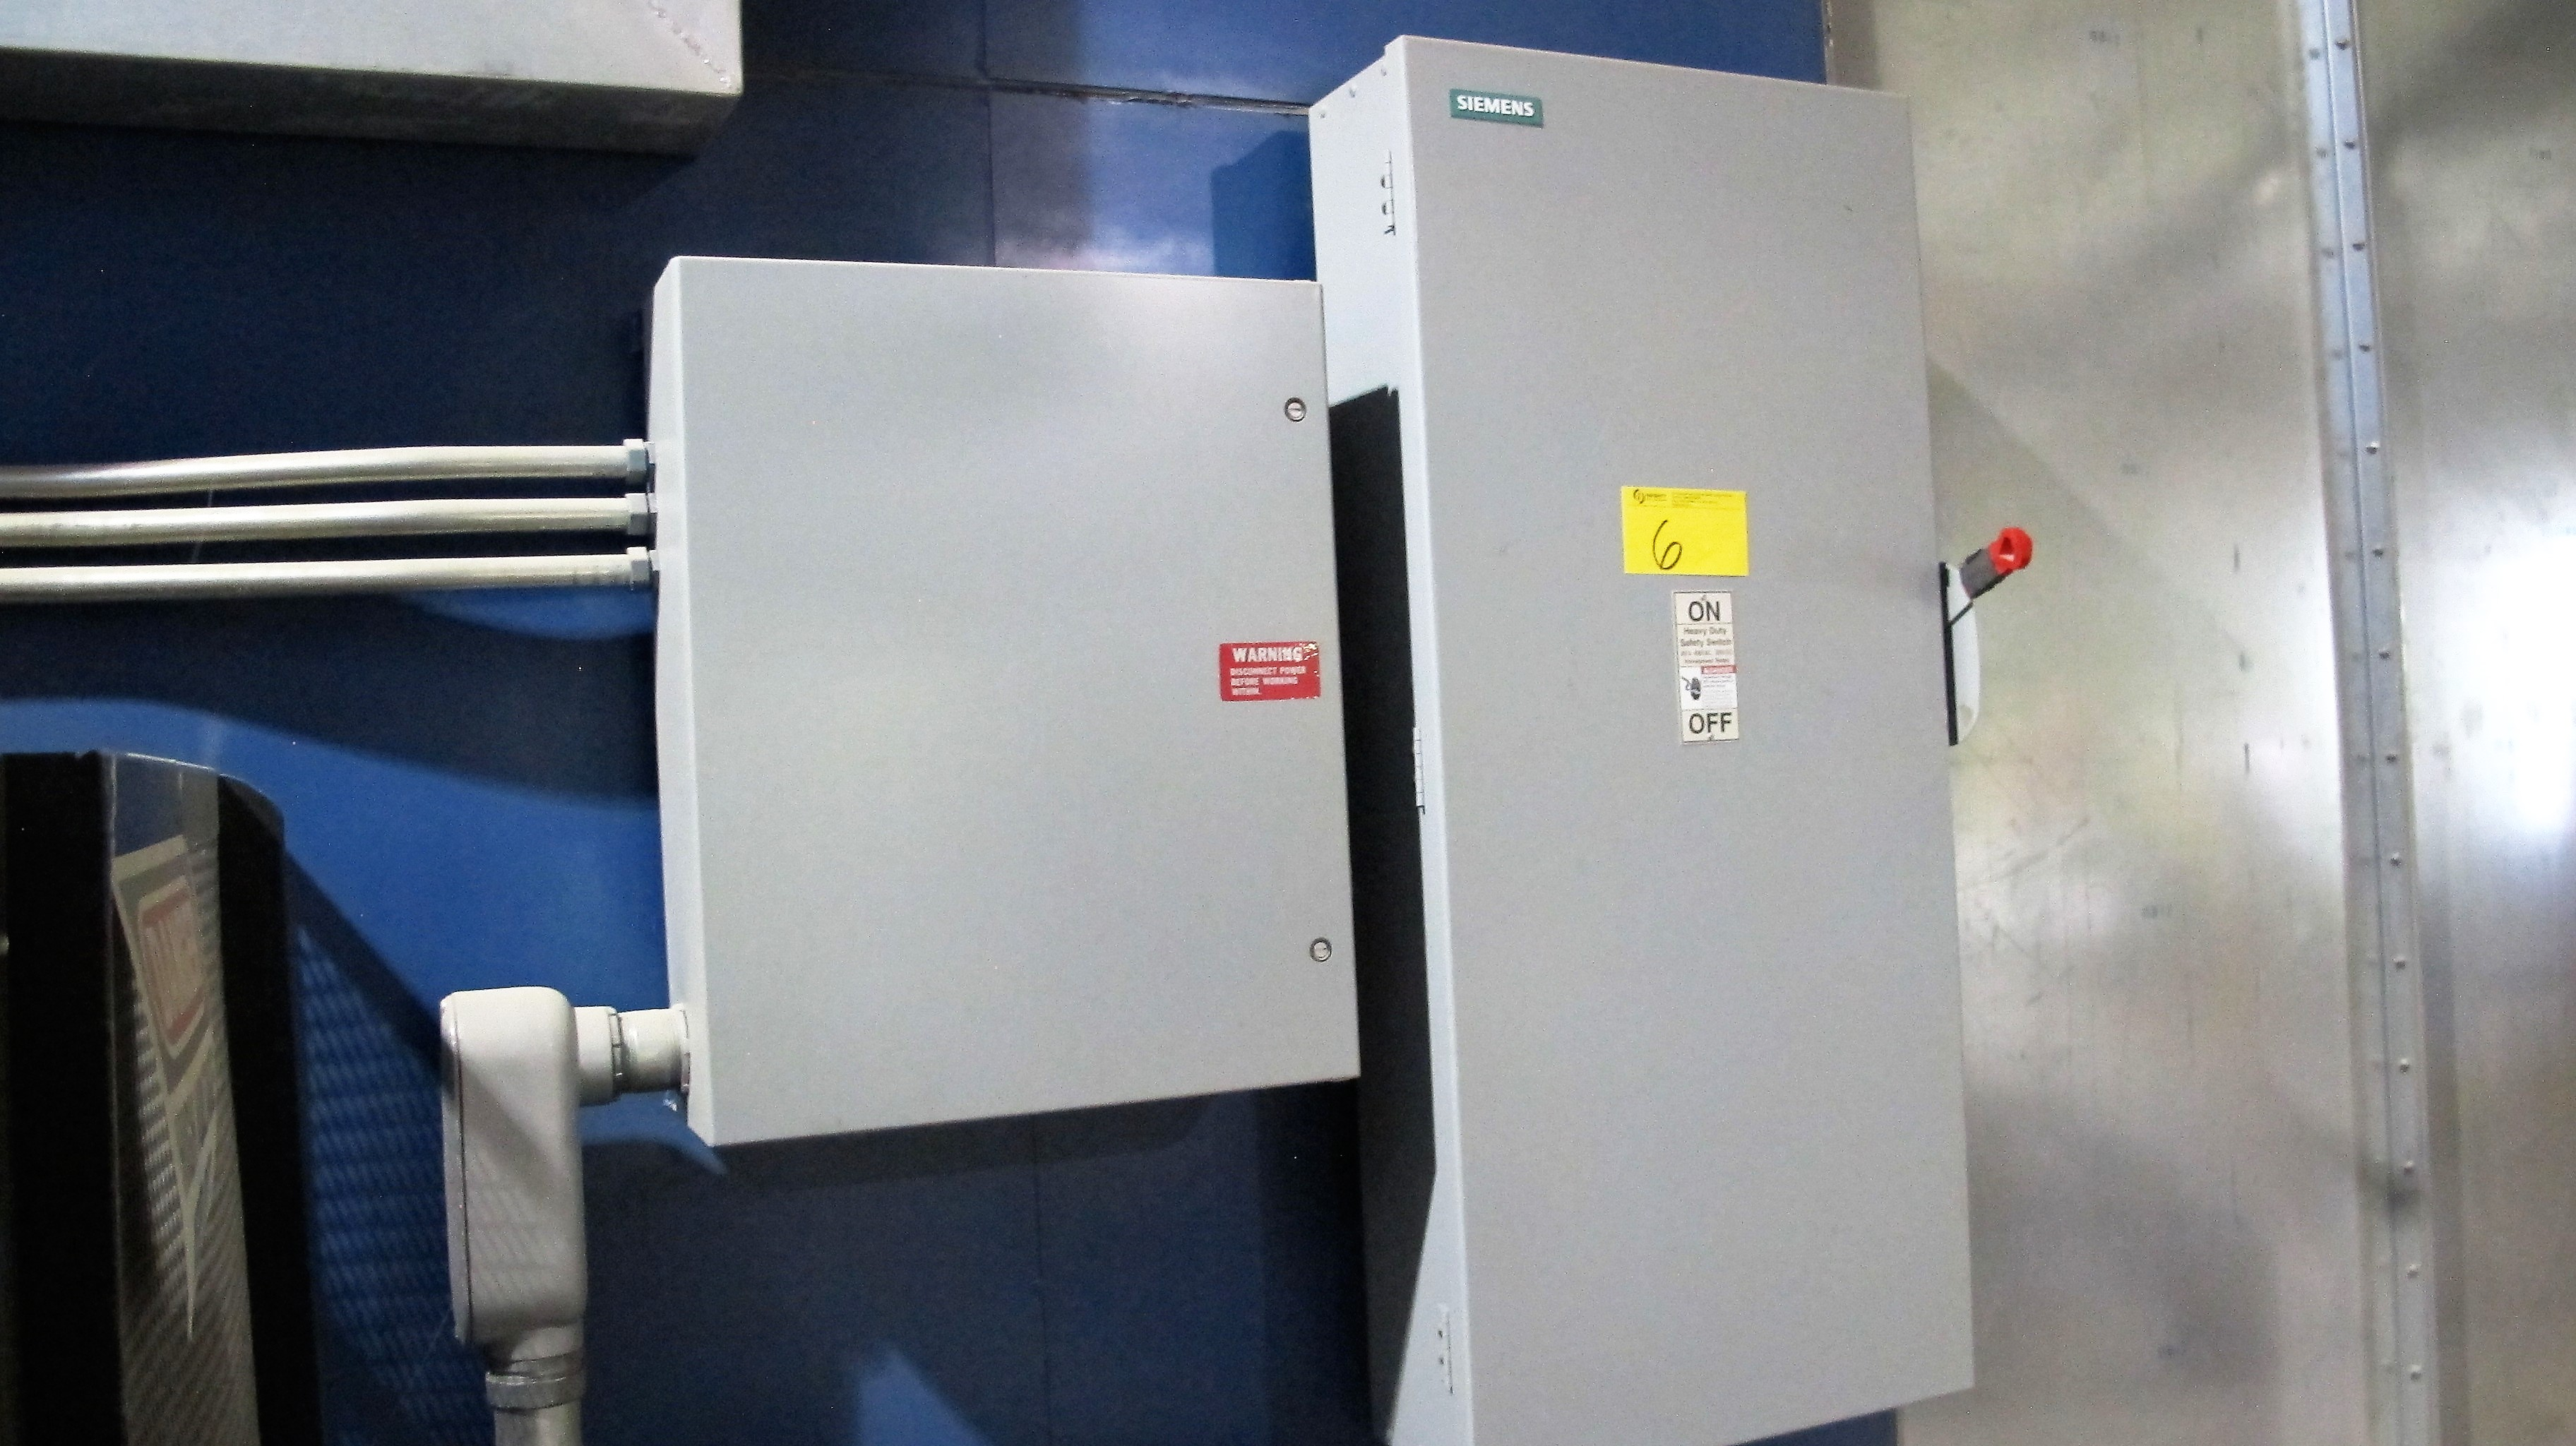 Lot 6 - LOT OF (2) NUTRO CONVECTION/IR FLOW THROUGH OVEN, S/N 35584-13 CONSISTING OF: